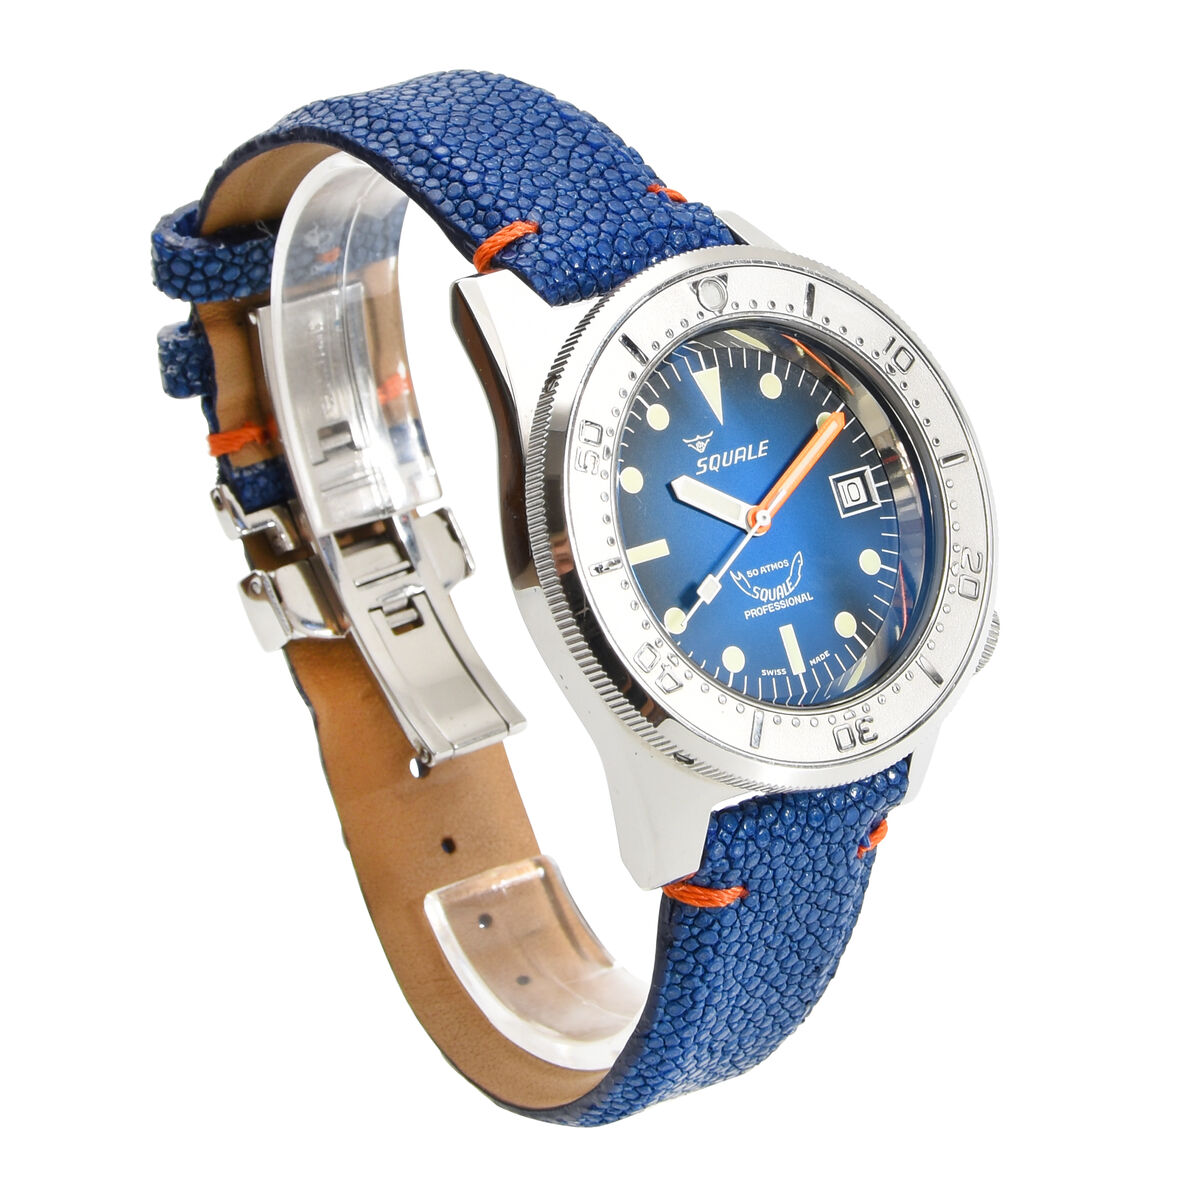 Squale 50 atmos 1521 Blu-Ray Dive Watch